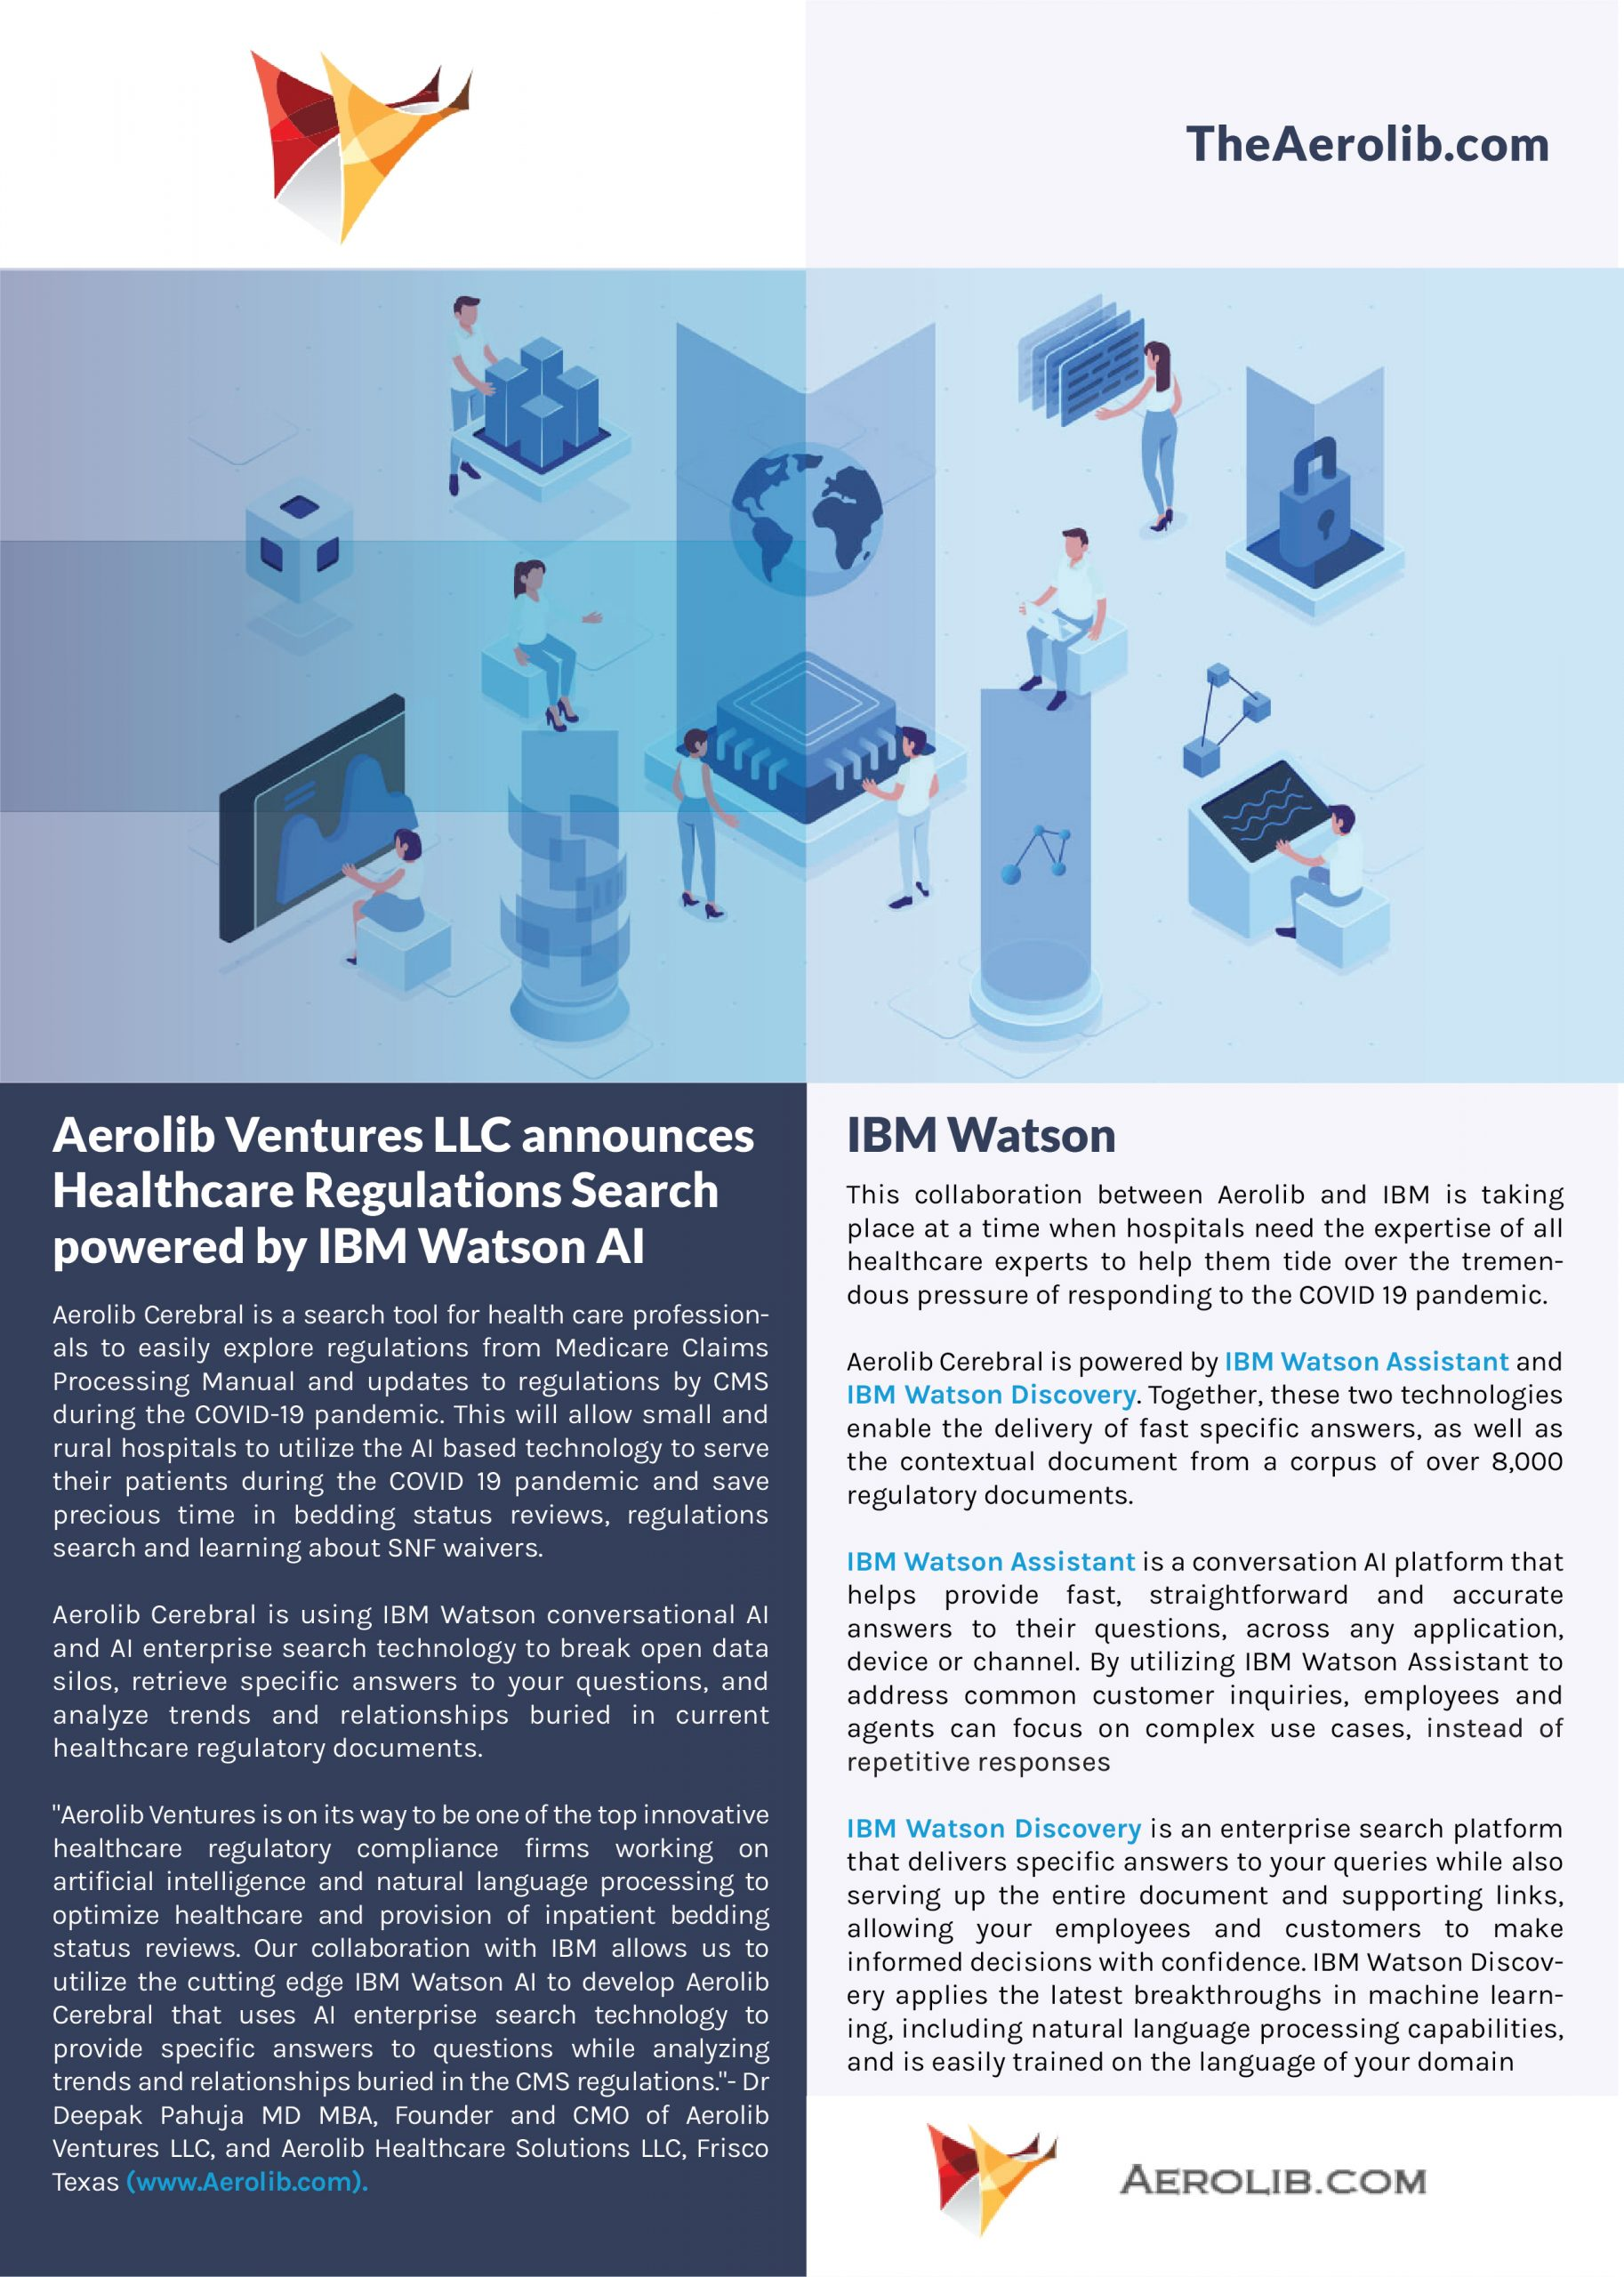 Aerolib Ventures LLC announces Healthcare Regulations Search powered by IBM Watson AI